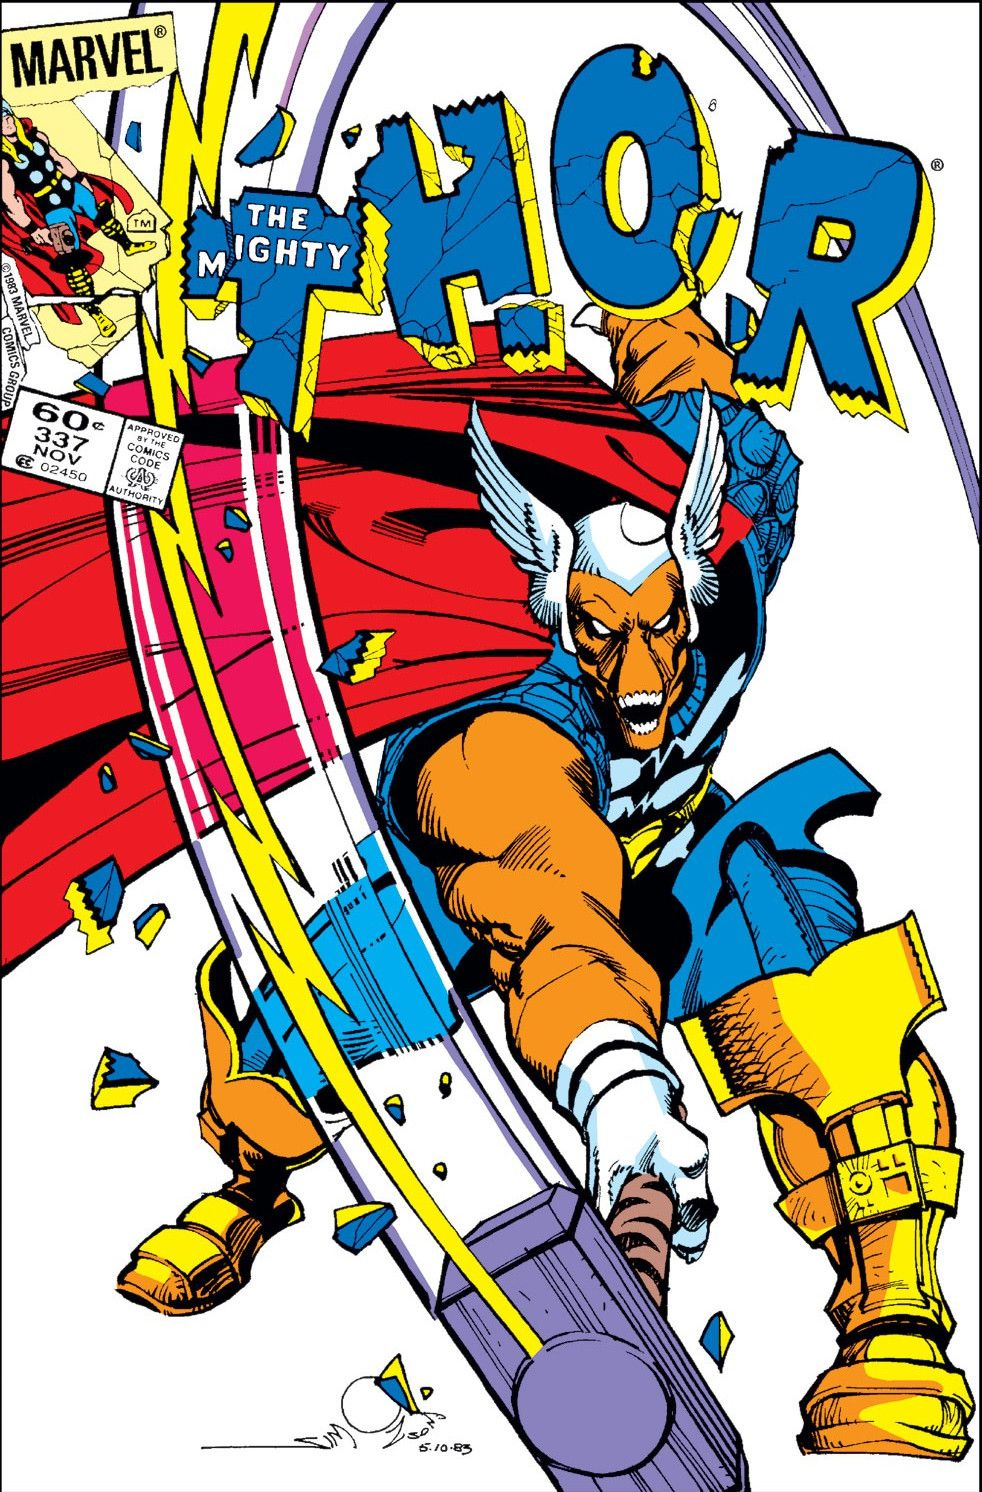 """Beta Ray Bill — an orange space warrior with a face like a horse's skull — swings Mjolnir down, smashing the letters """"THOR"""" on the cover of Thor #337, Marvel Comics (1983)."""